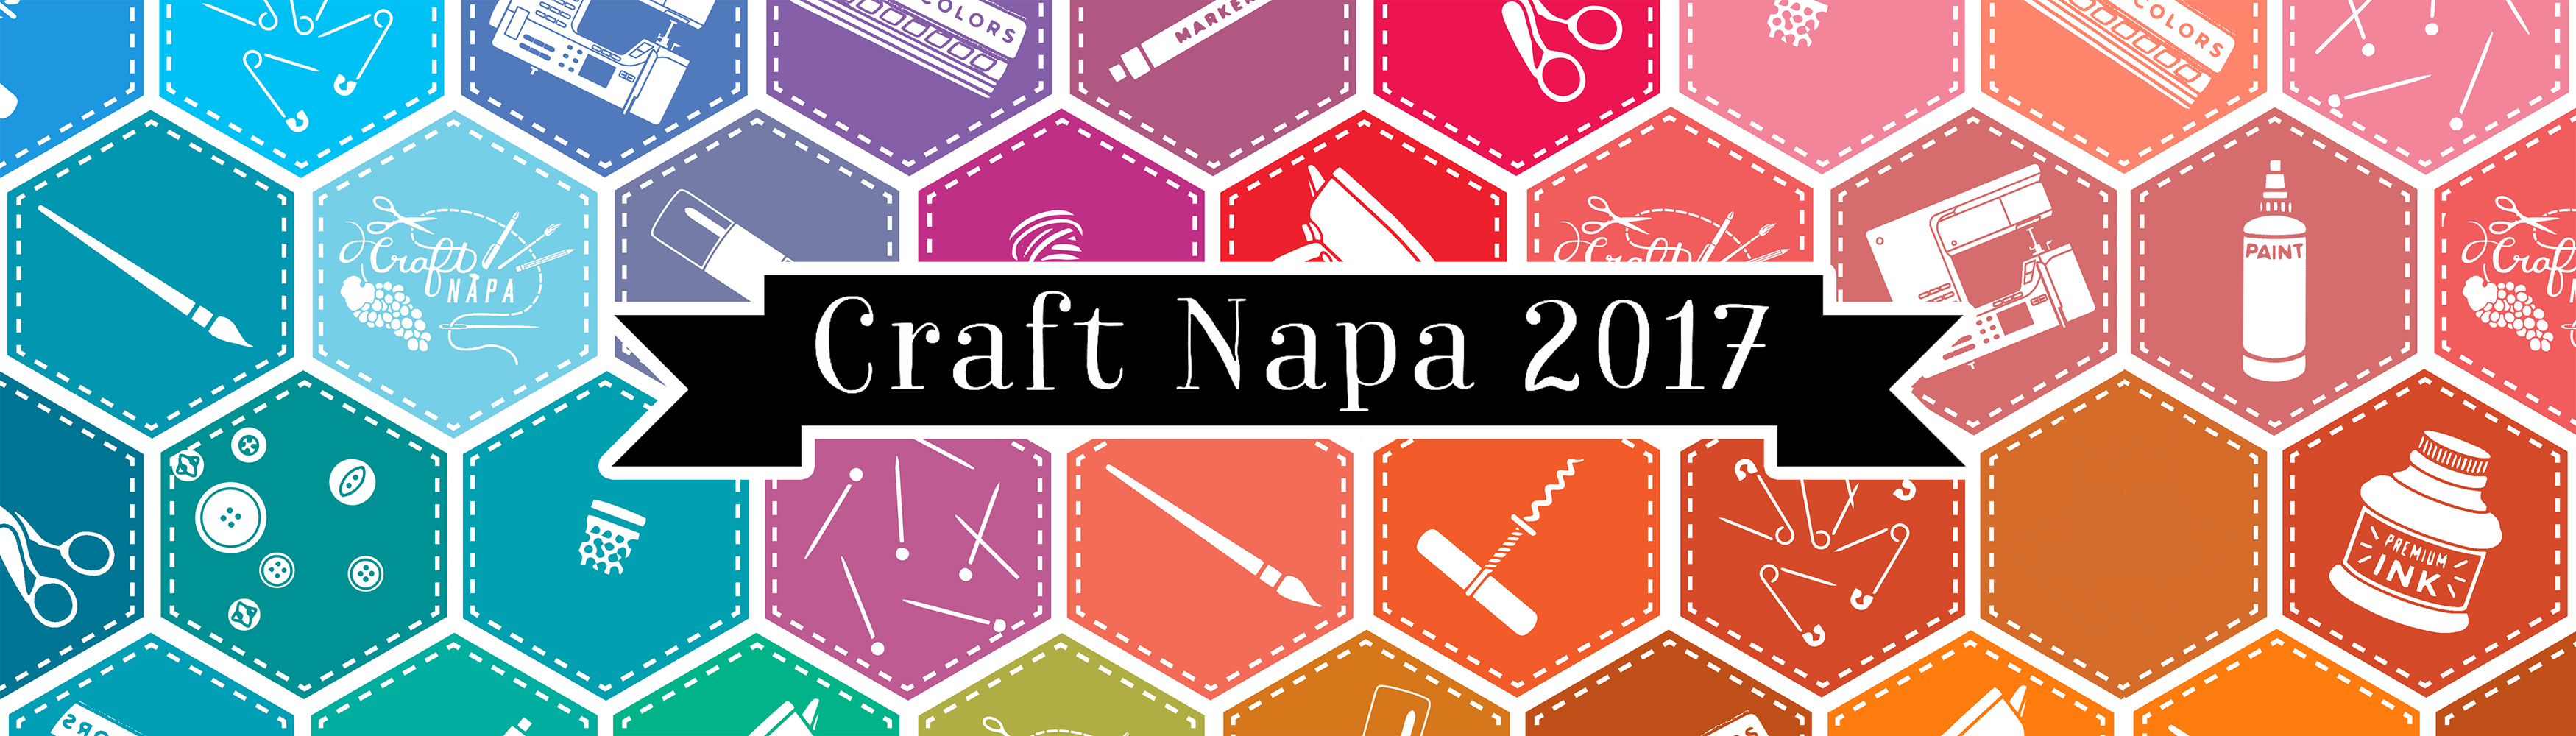 CRAFT NAPA 2017